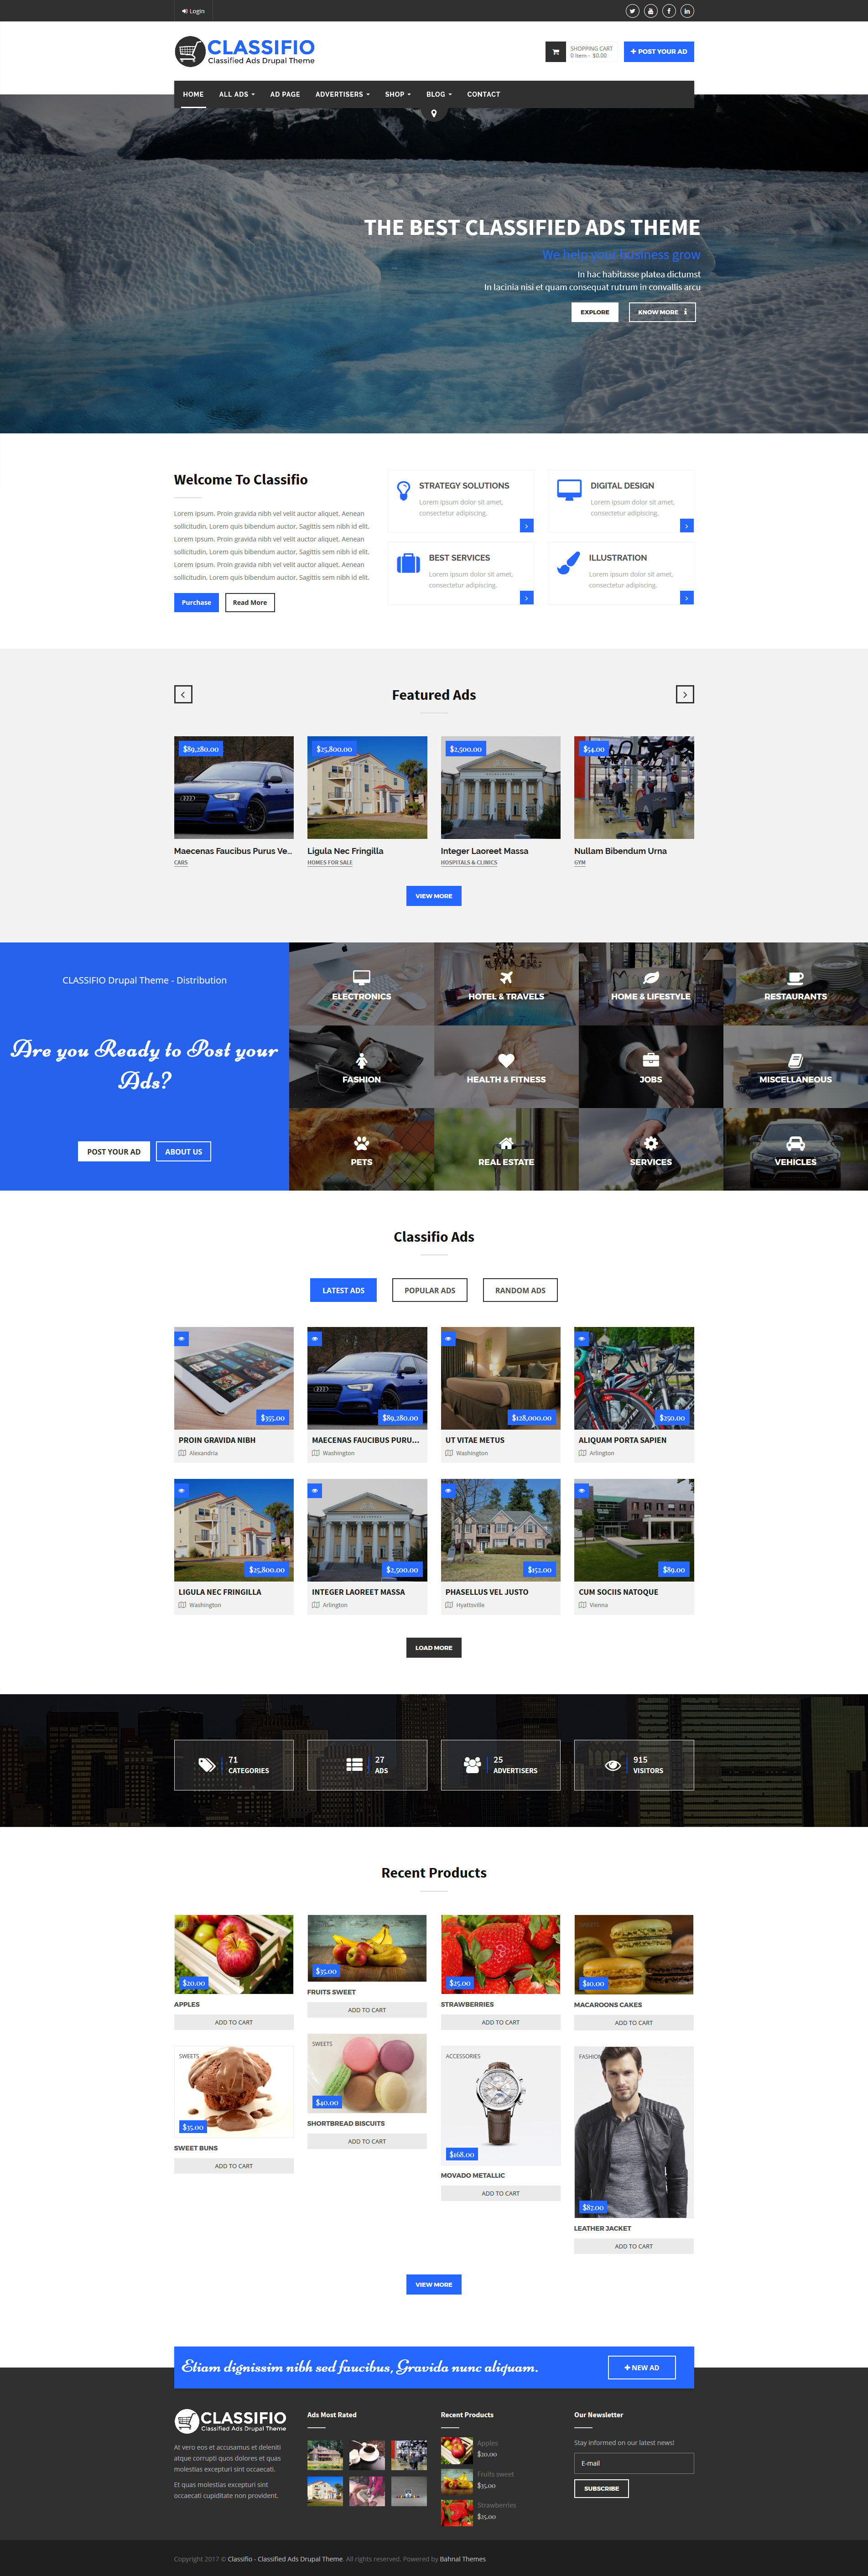 Website Design Template 63835 - drupal google maps corporate business companies advertising